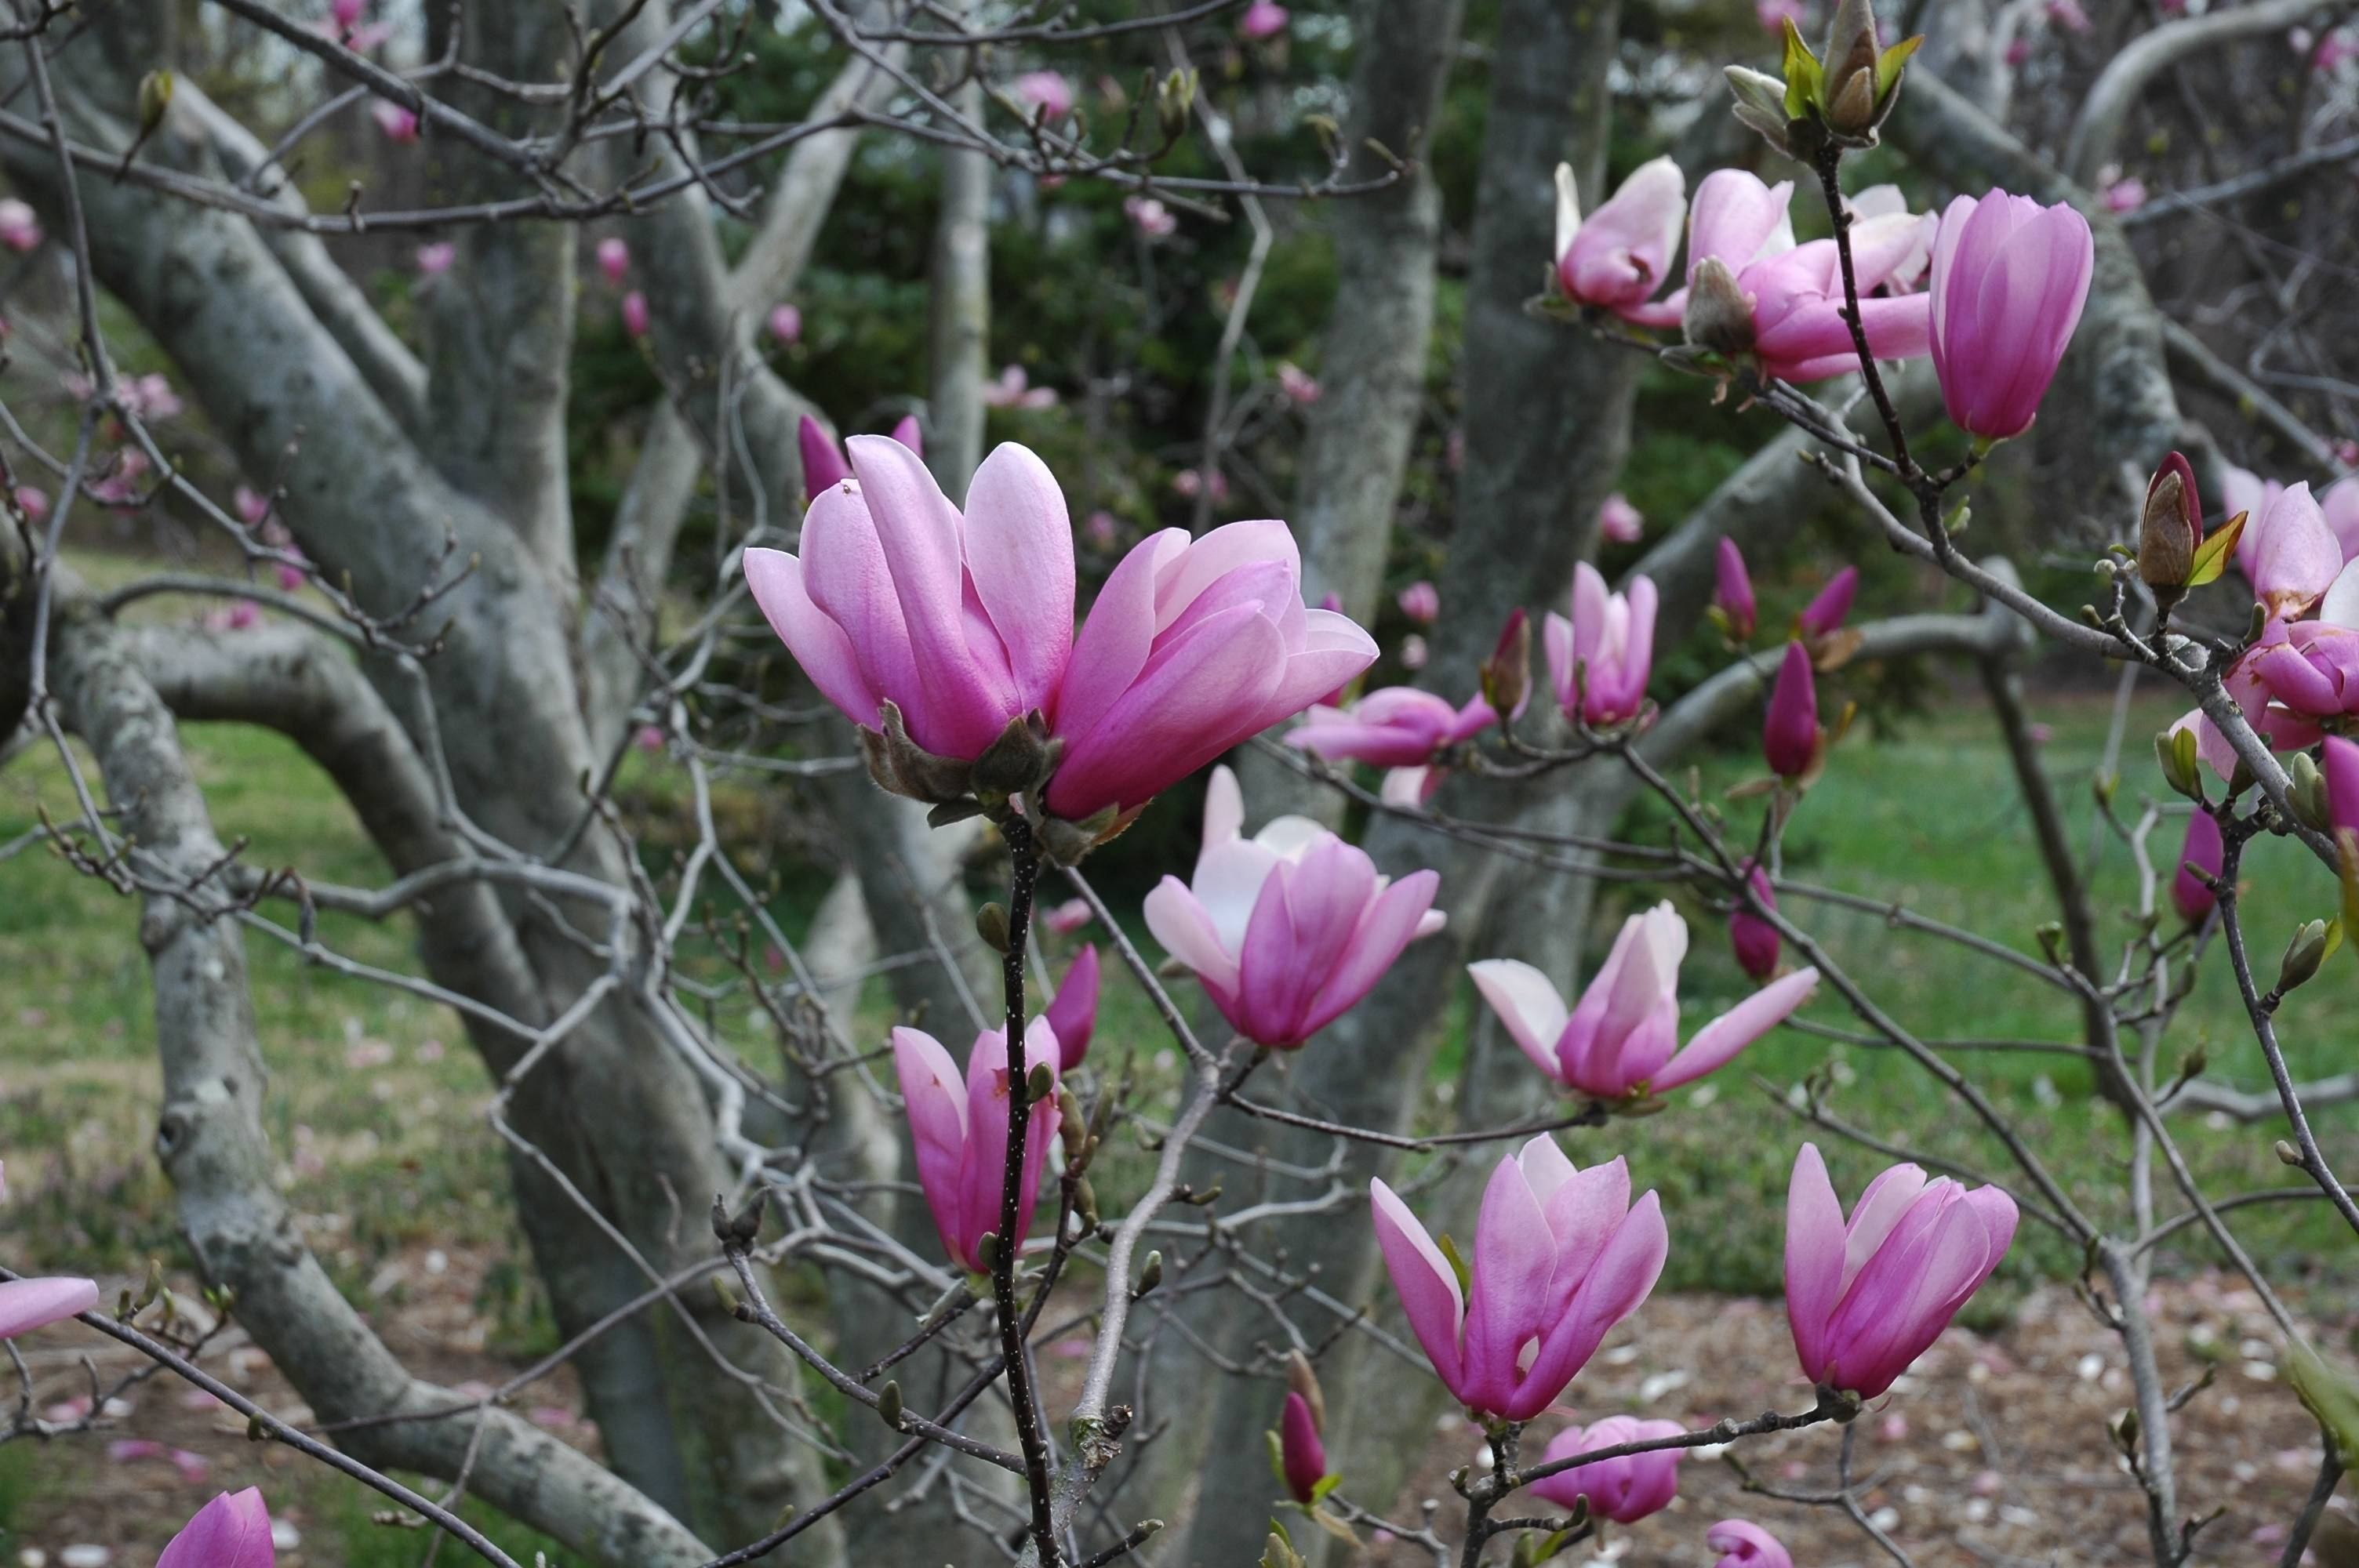 Magnolia Hd Wallpapers